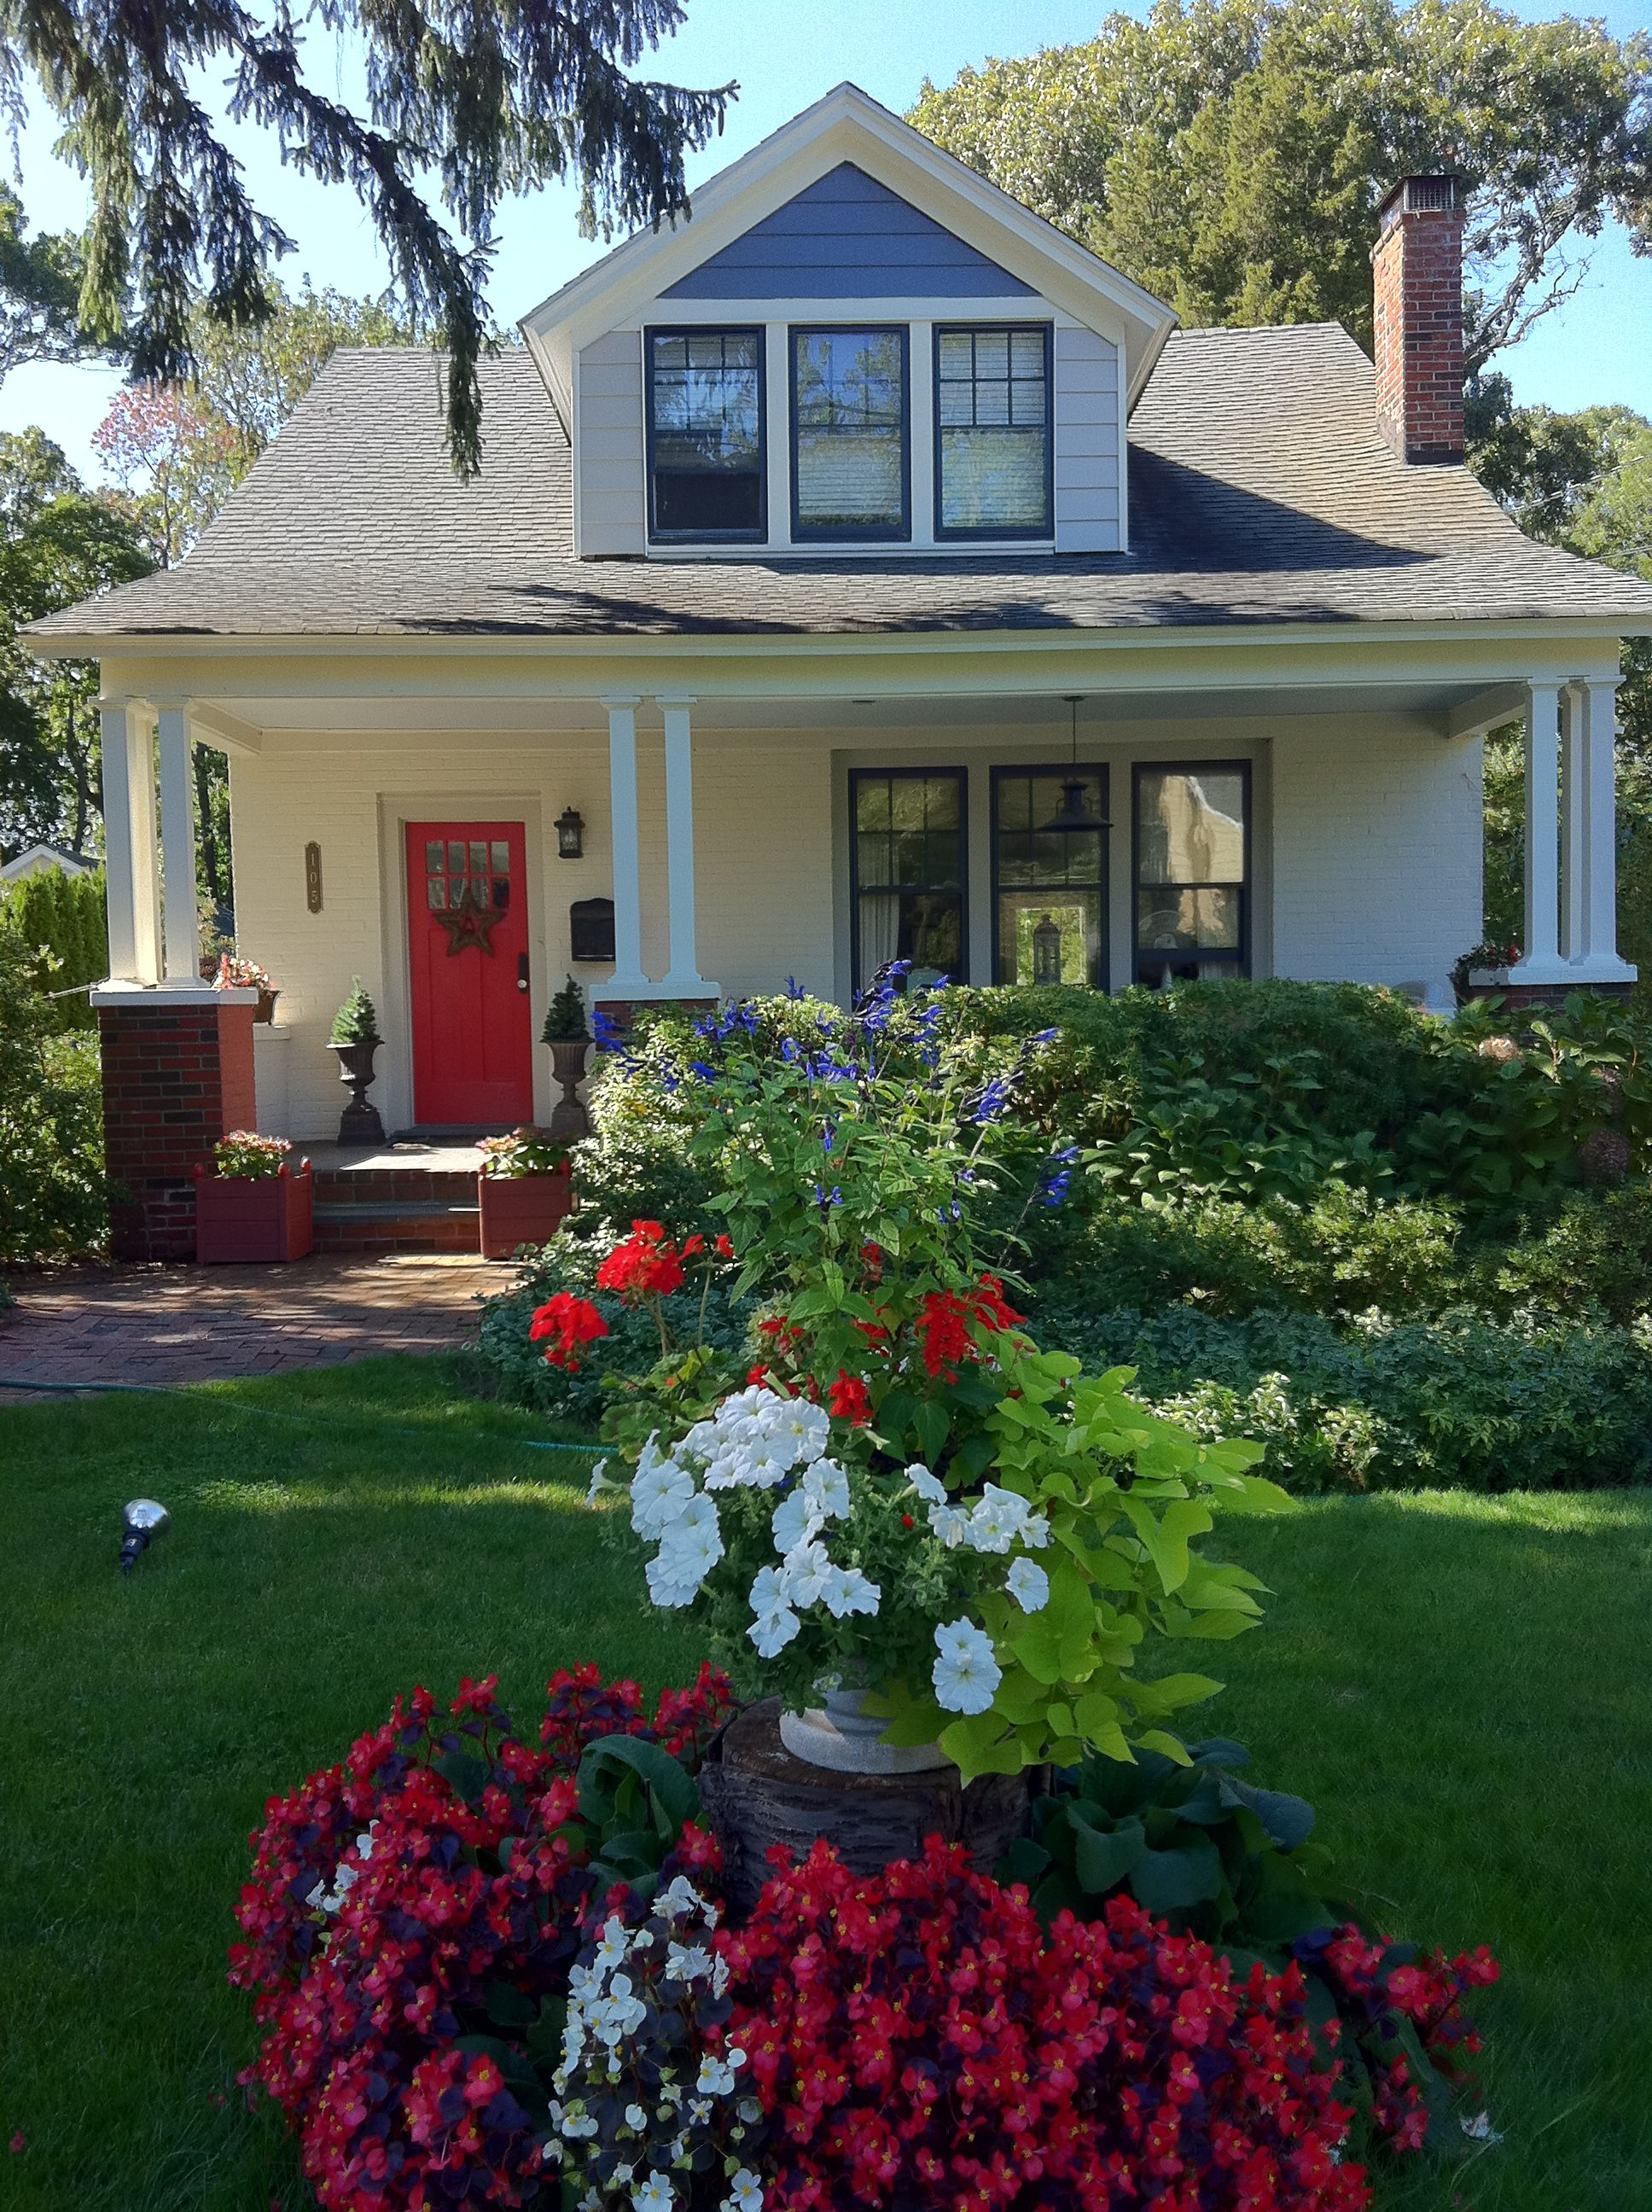 1920s Craftsman Bungalow. Exterior Color Scheme: Porch